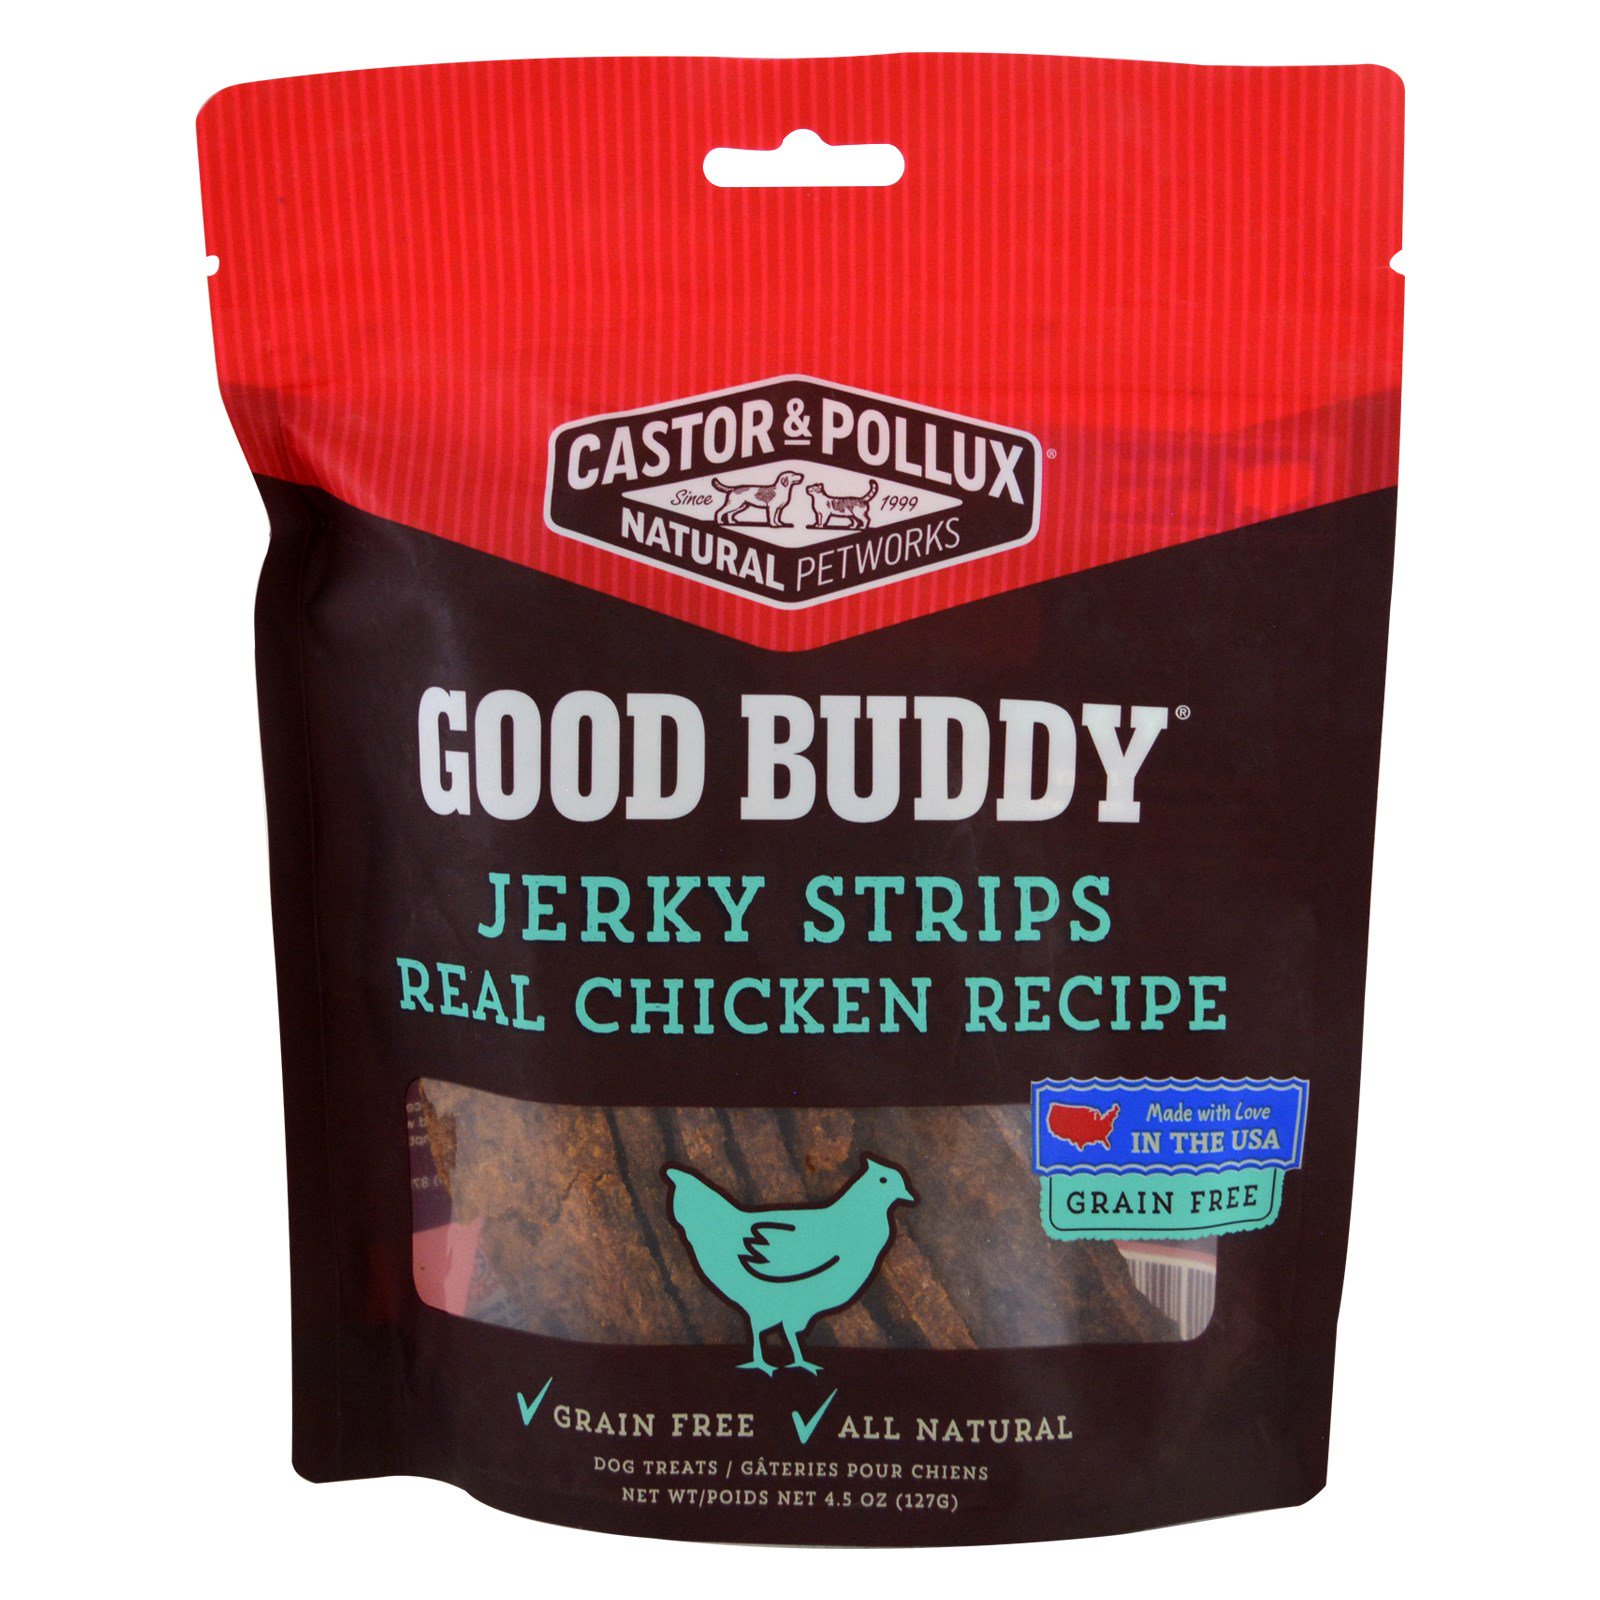 Castor & Pollux, Good Buddy, Jerky Strips, Real Chicken Recipe, 4.5 oz(pack of 3)